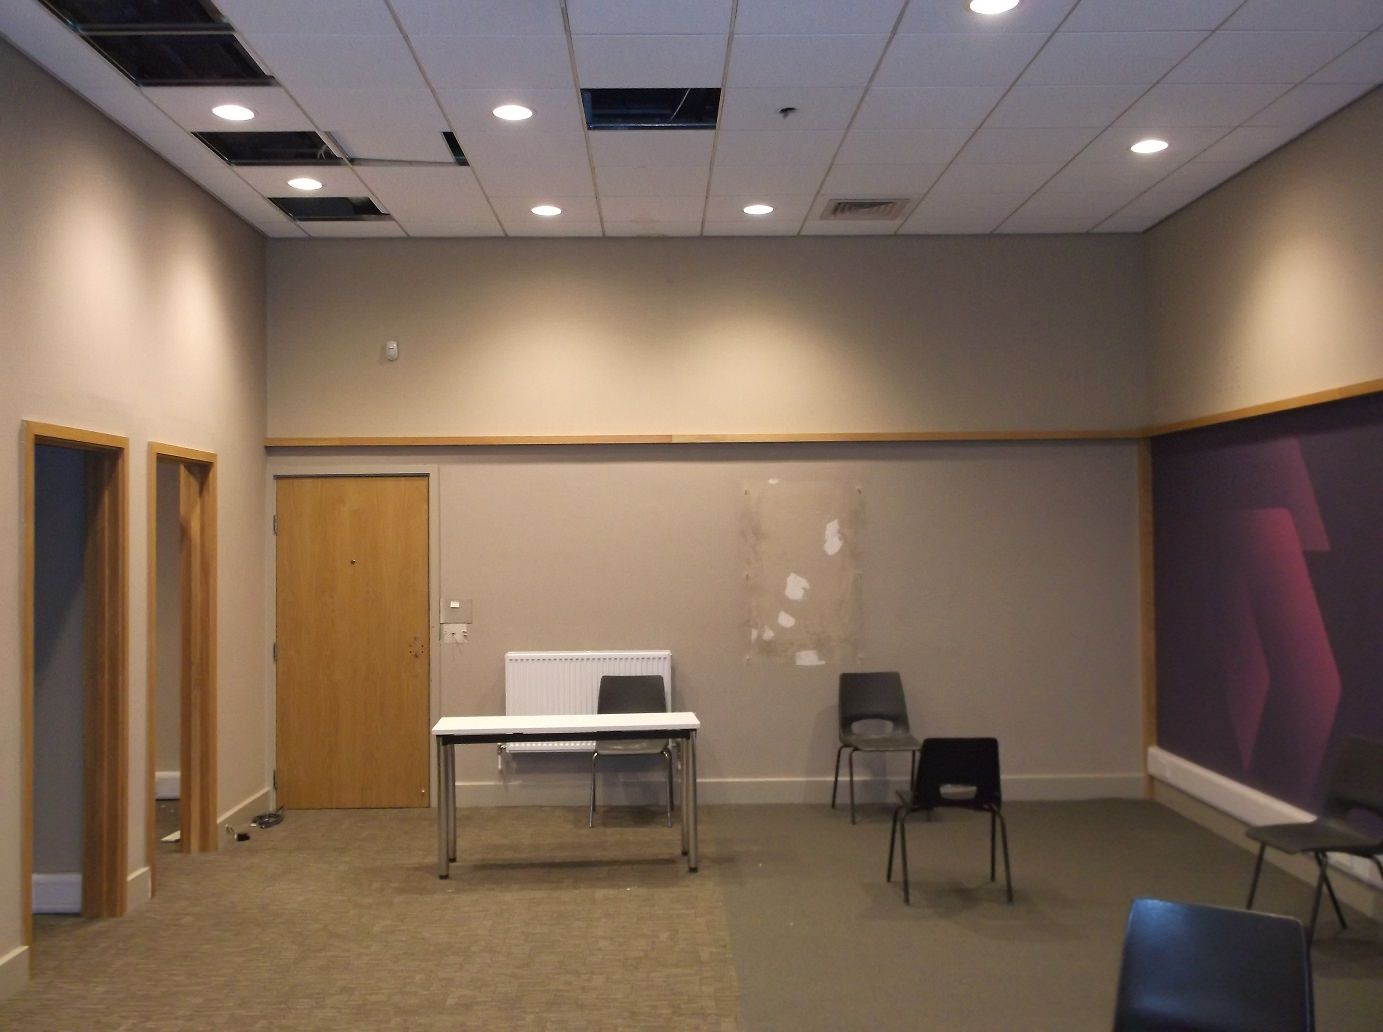 well-lit meeting room with carpeted floor, wooden doors, and velvet abstract side wall design